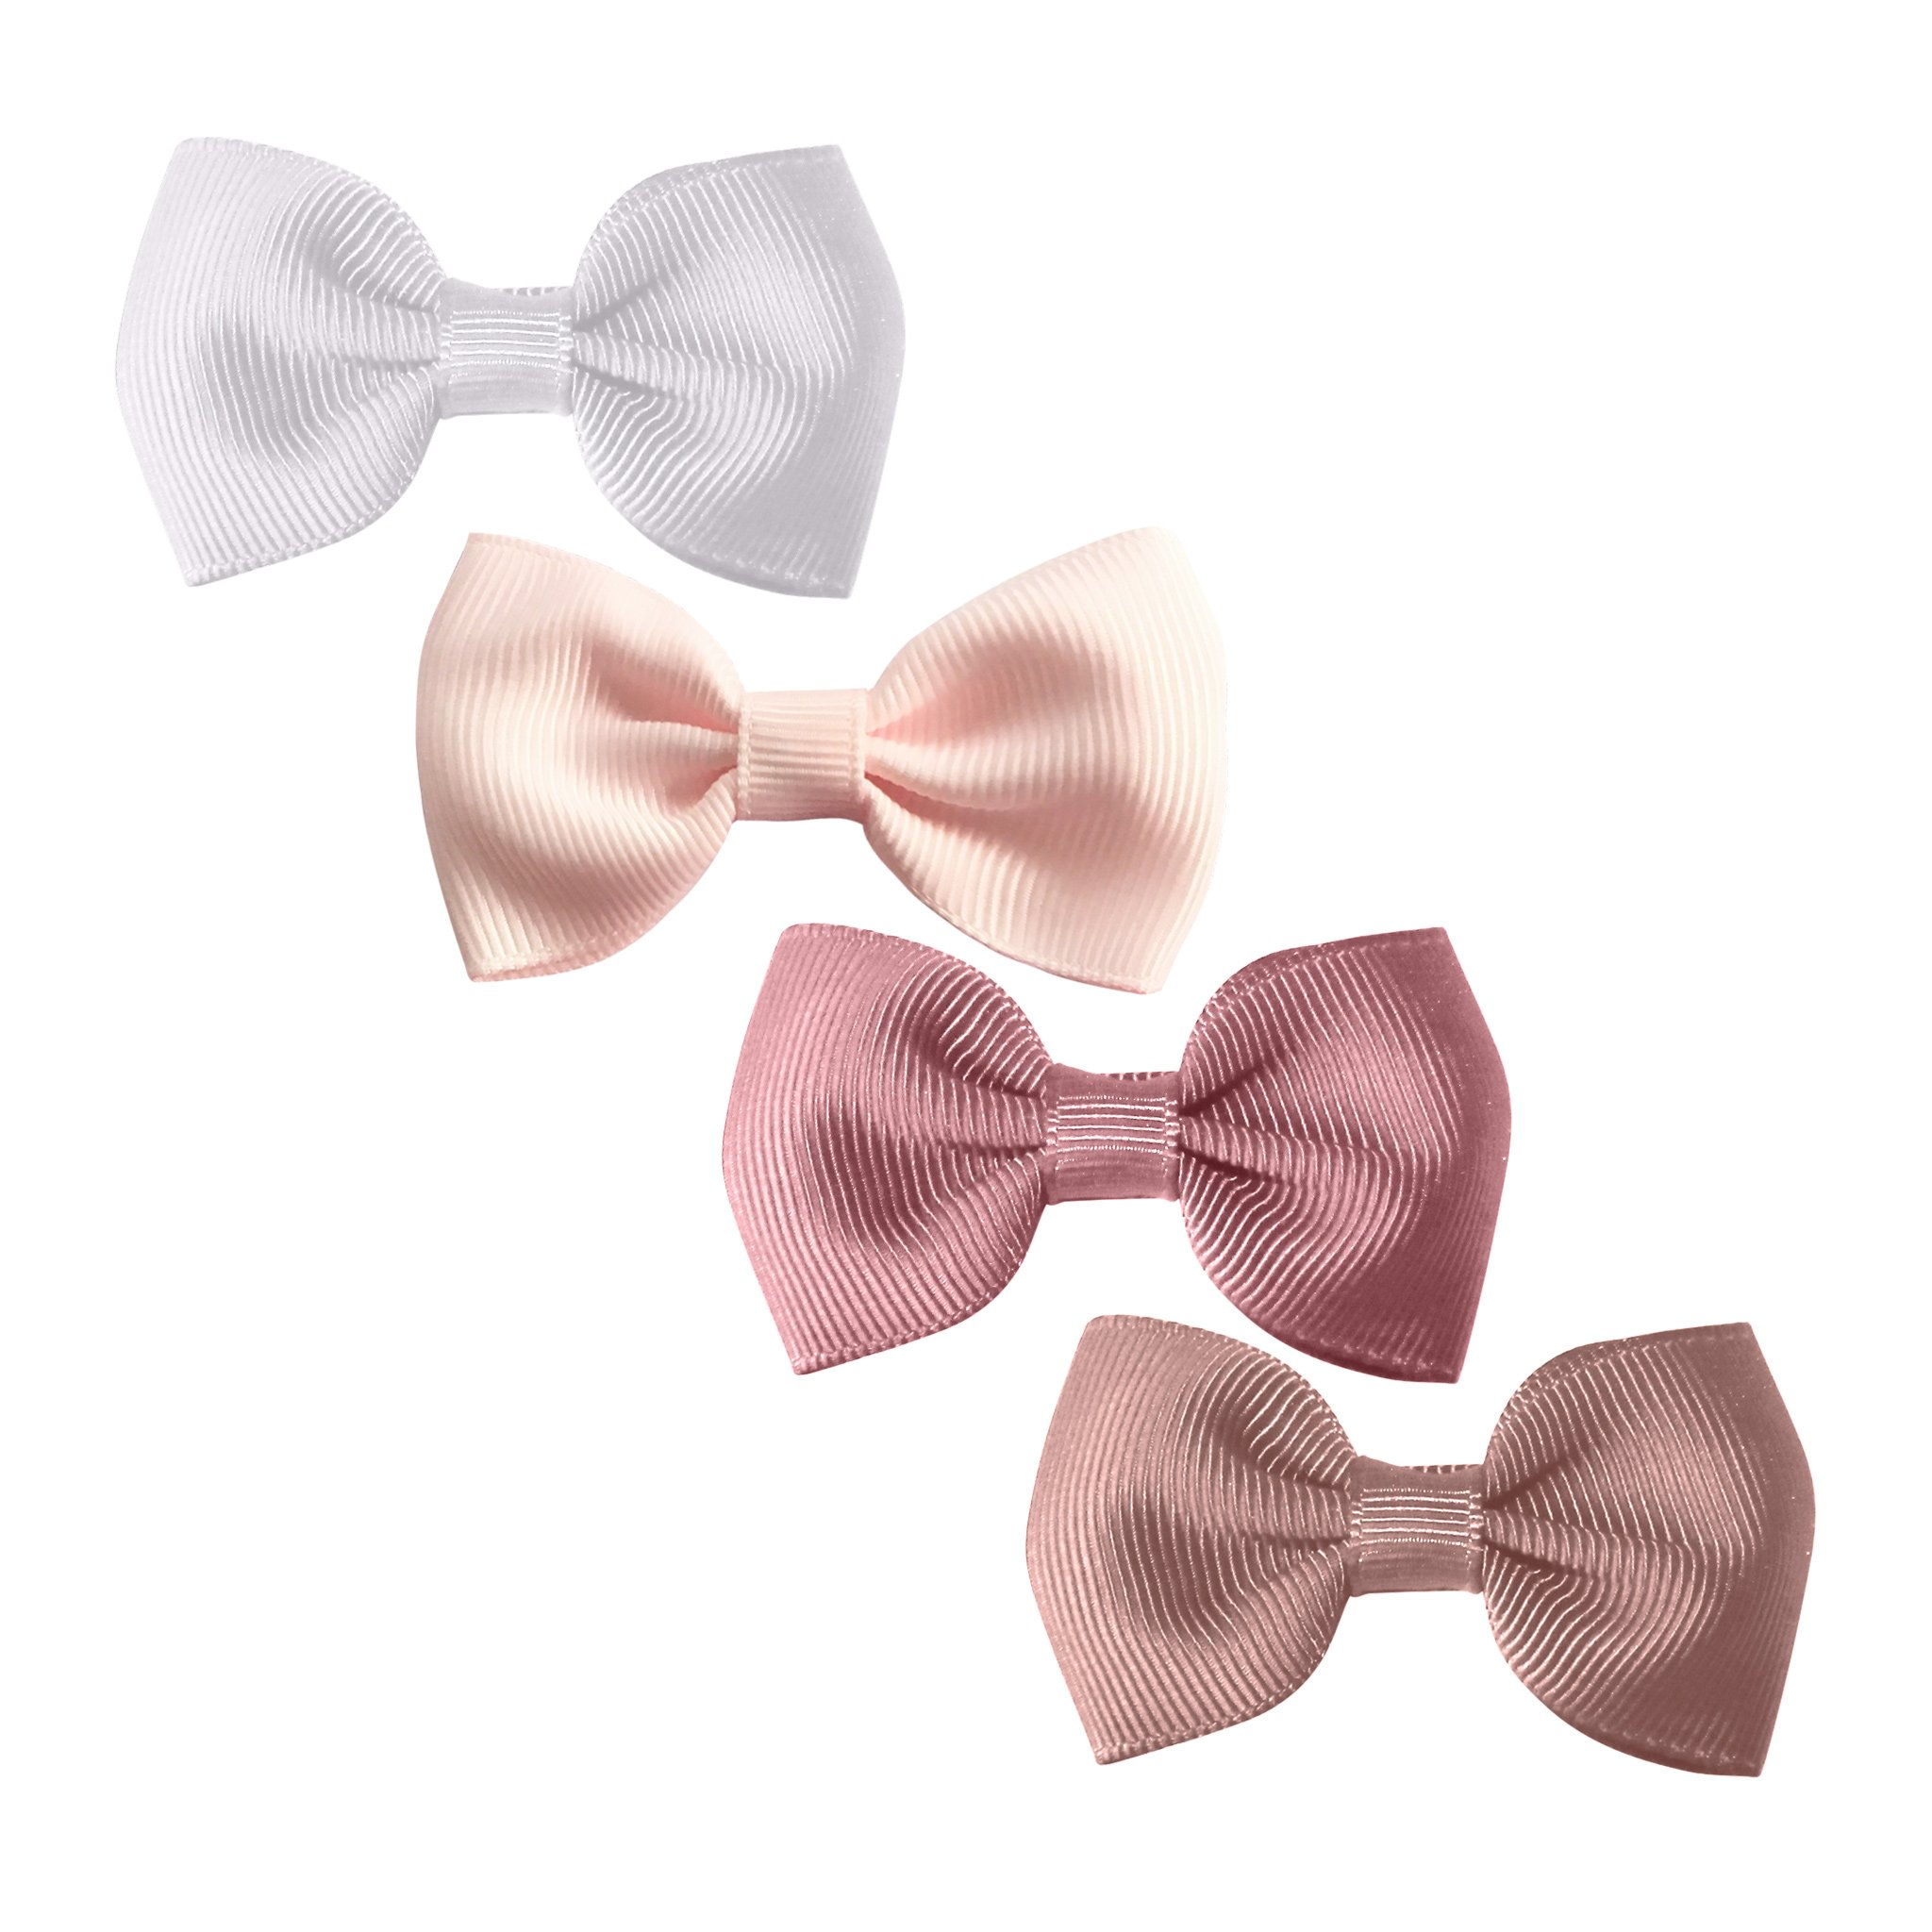 Image of Milledeux® Gift set - 4 Small bowtie bows - alligator clip - white/pink